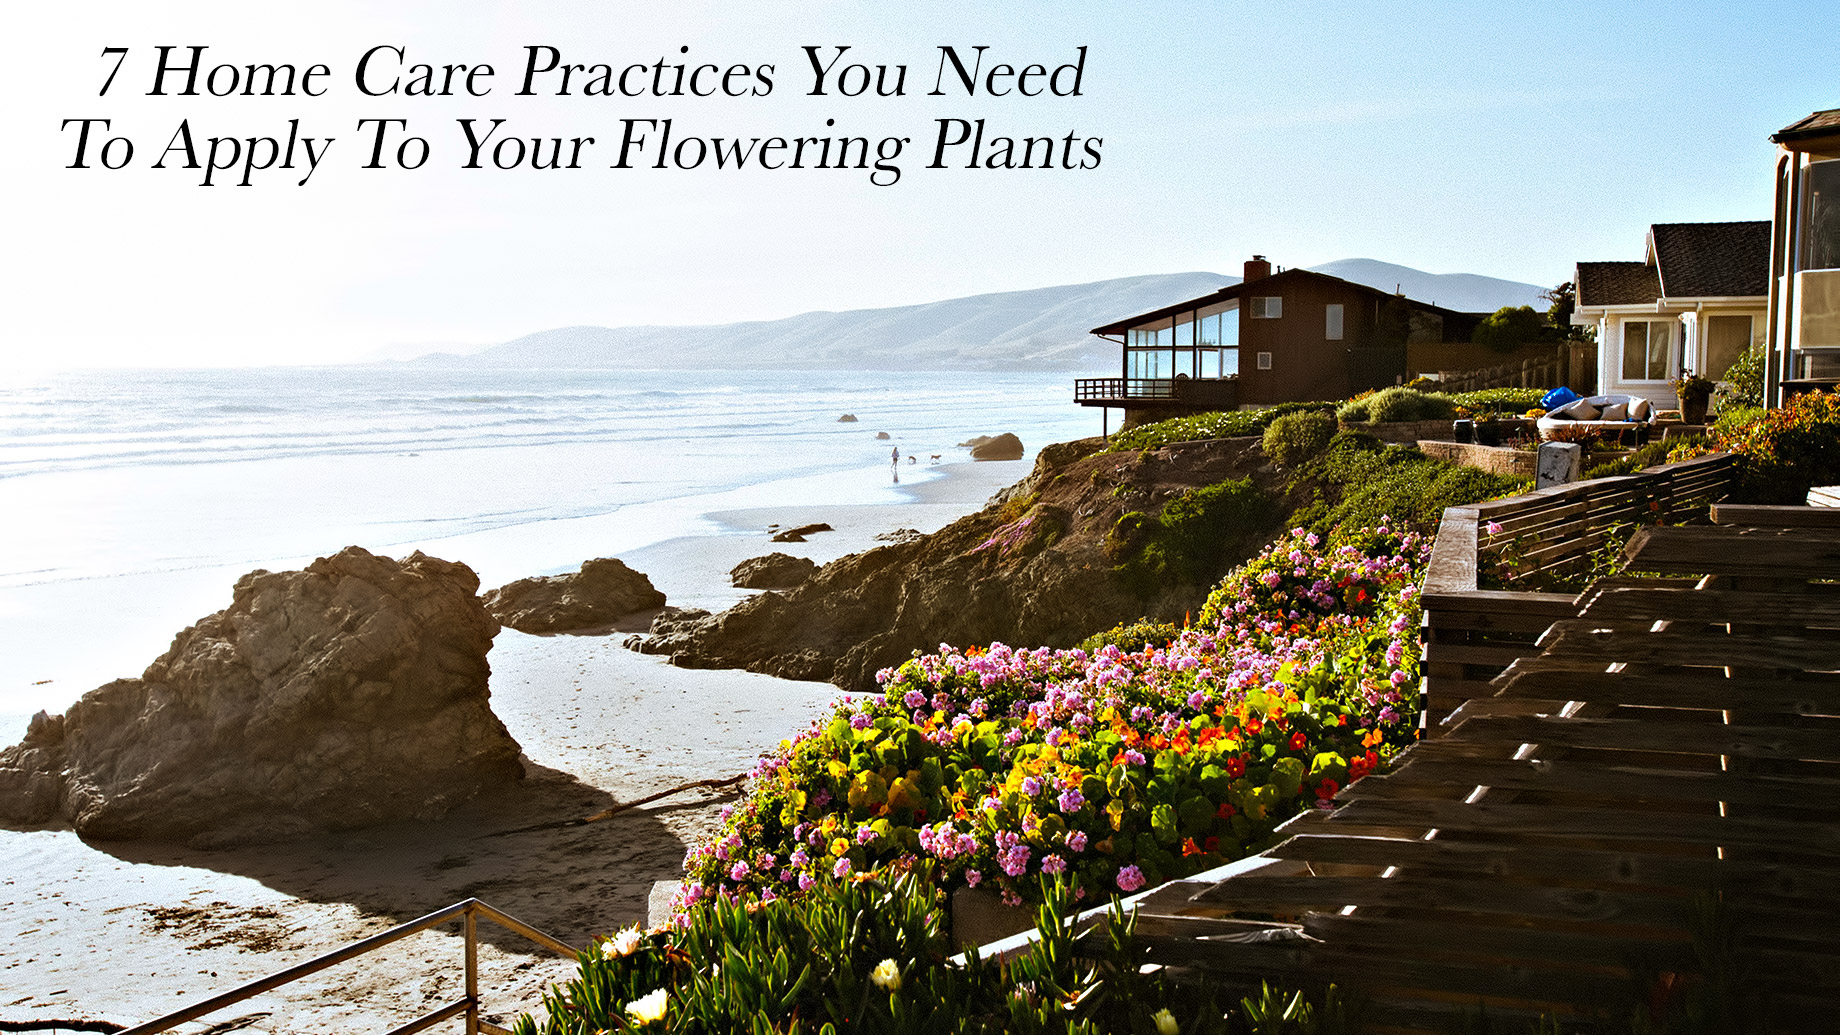 7 Home Care Practices You Need To Apply To Your Flowering Plants